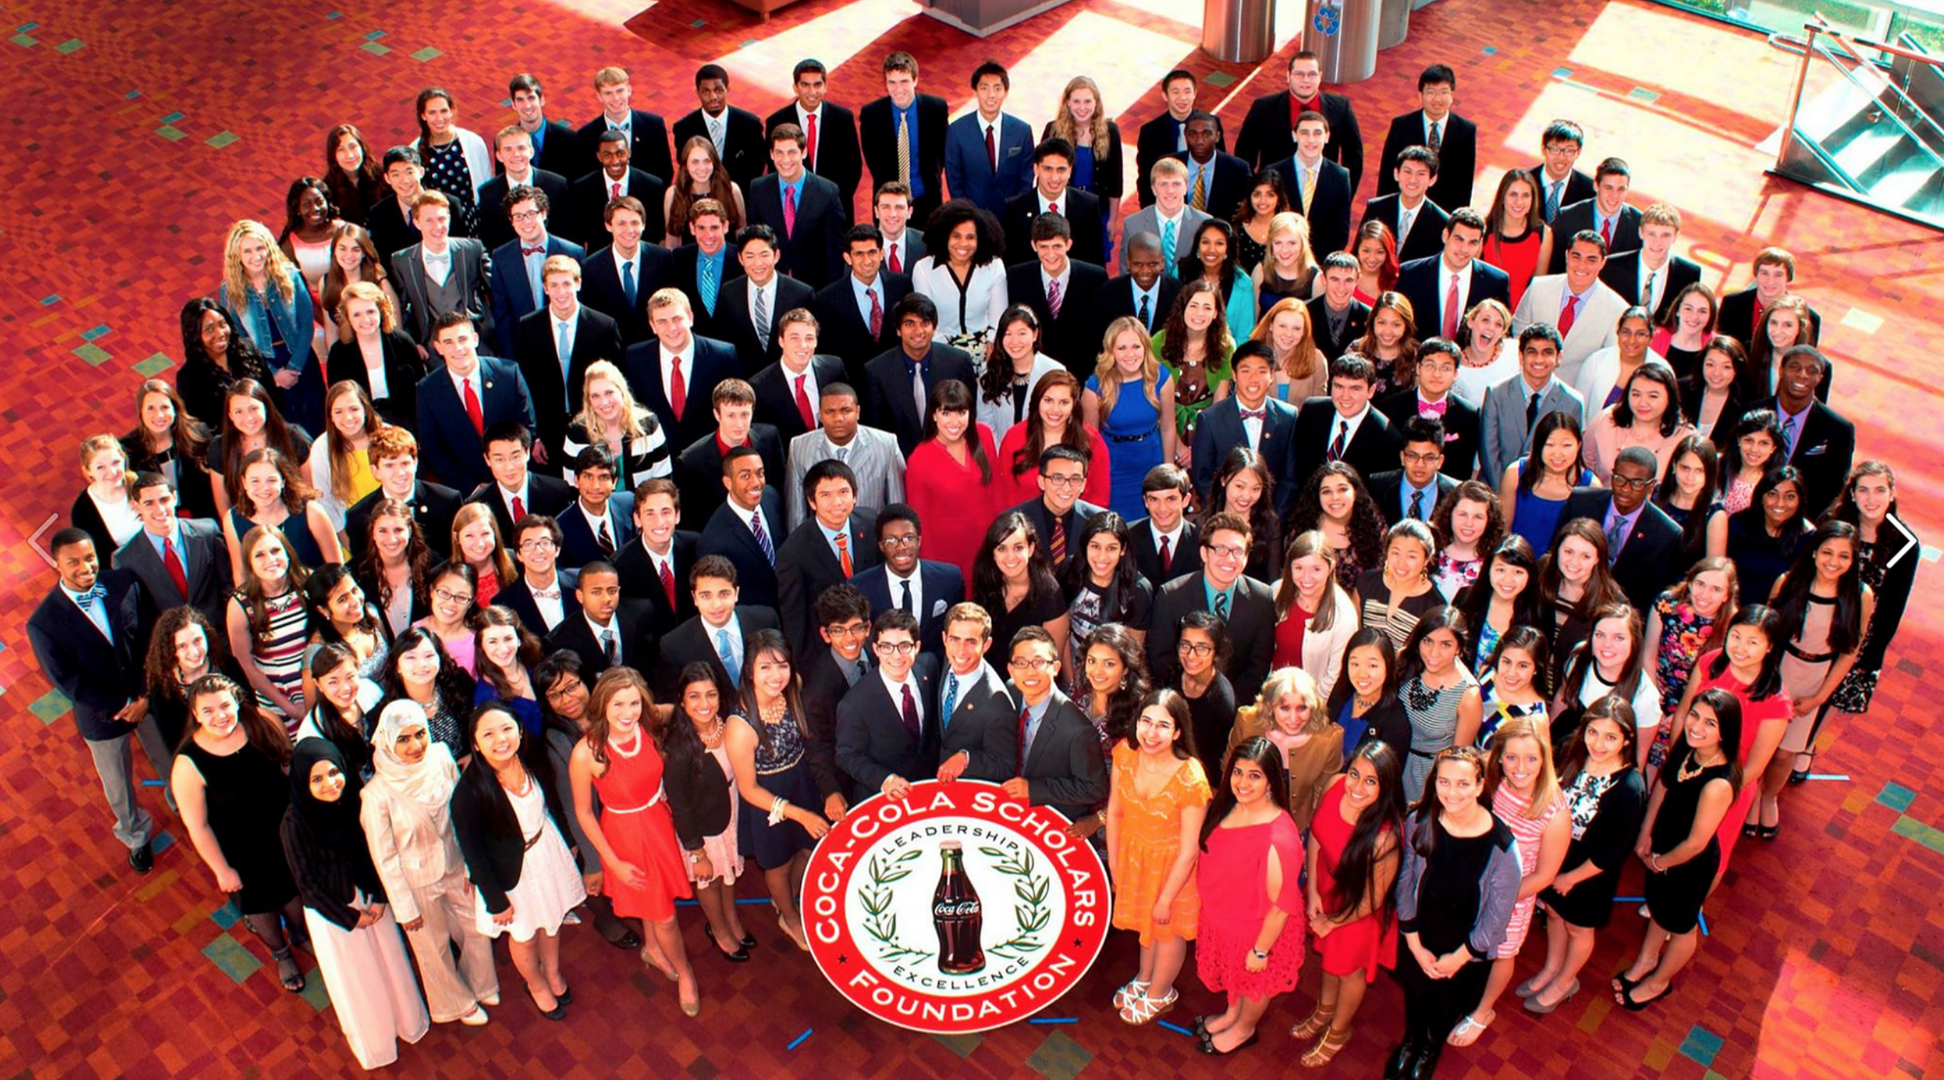 The 2014 Class of Coca Cola Scholars, one of the largest scholarship programs in the country, awarded to 150 students out of 100,000 that apply. (Lower right? Honestly couldn't tell you.)